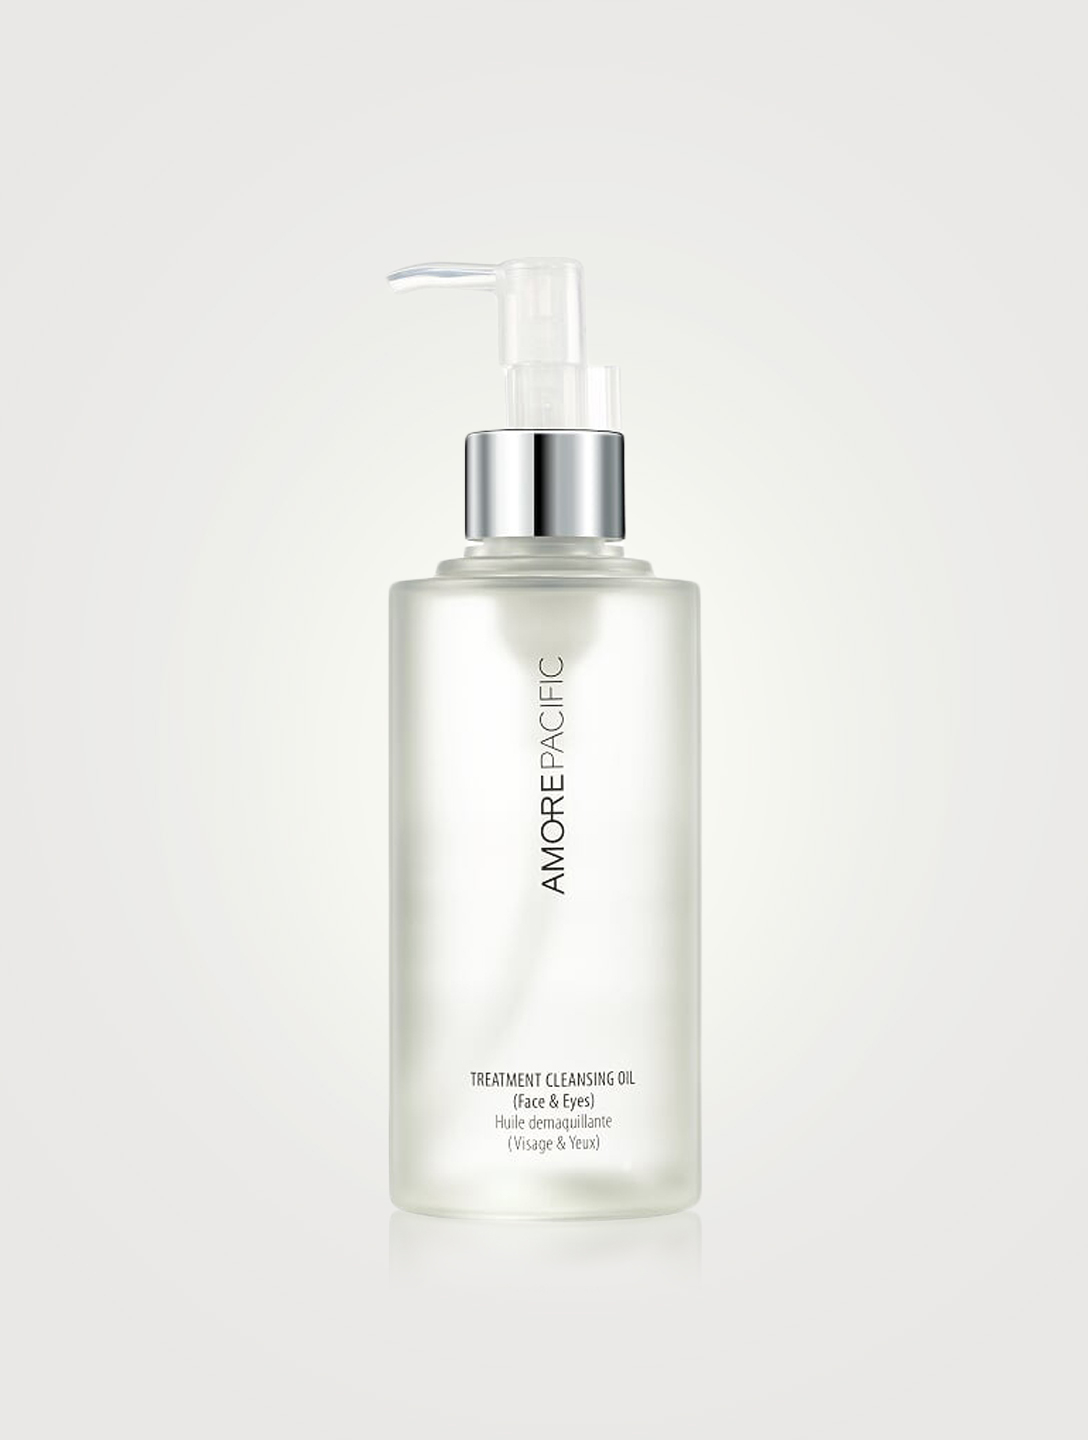 AMOREPACIFIC Treatment Cleansing Oil Beauty